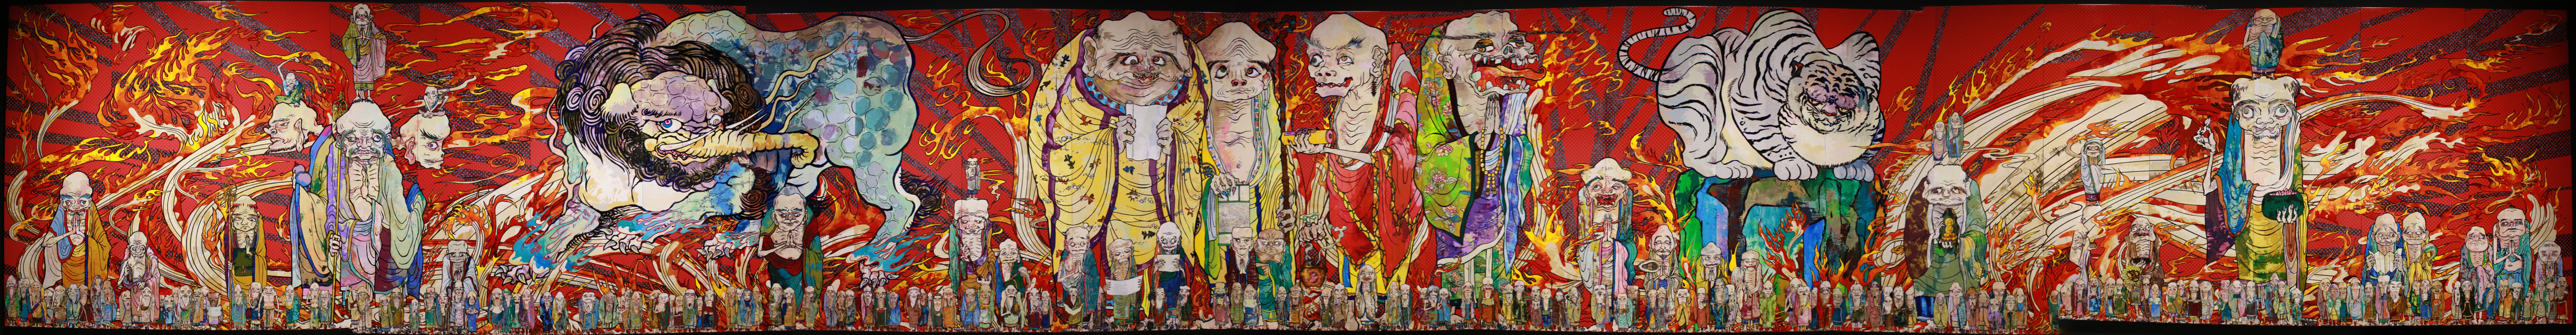 The 500 Arhats [White Tiger], 2012